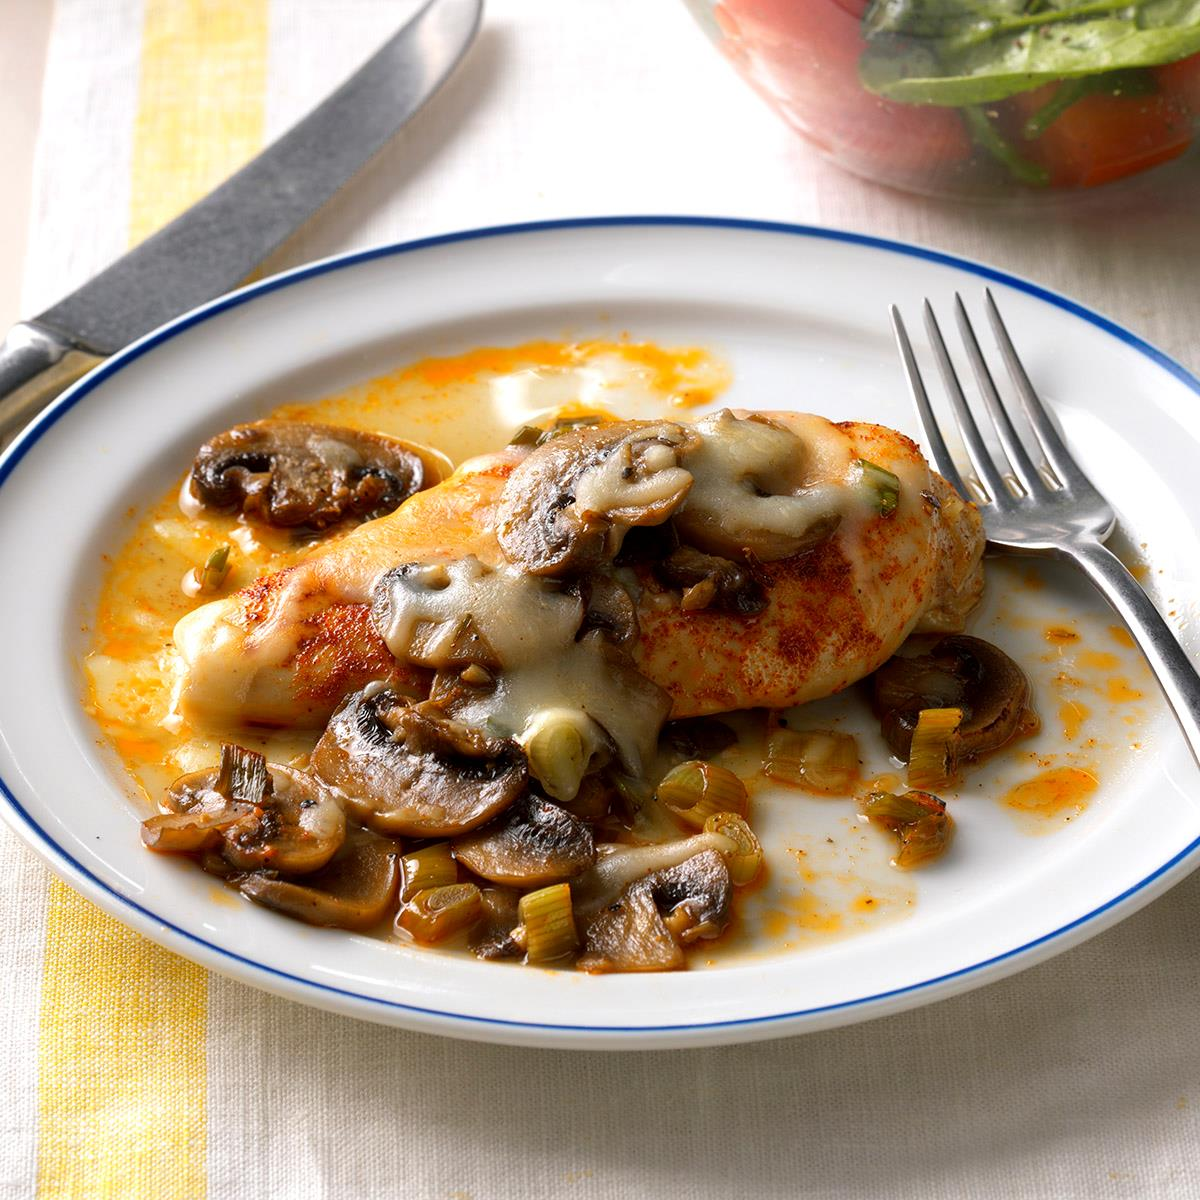 Baked Chicken And Mushrooms Recipe Taste Of Home